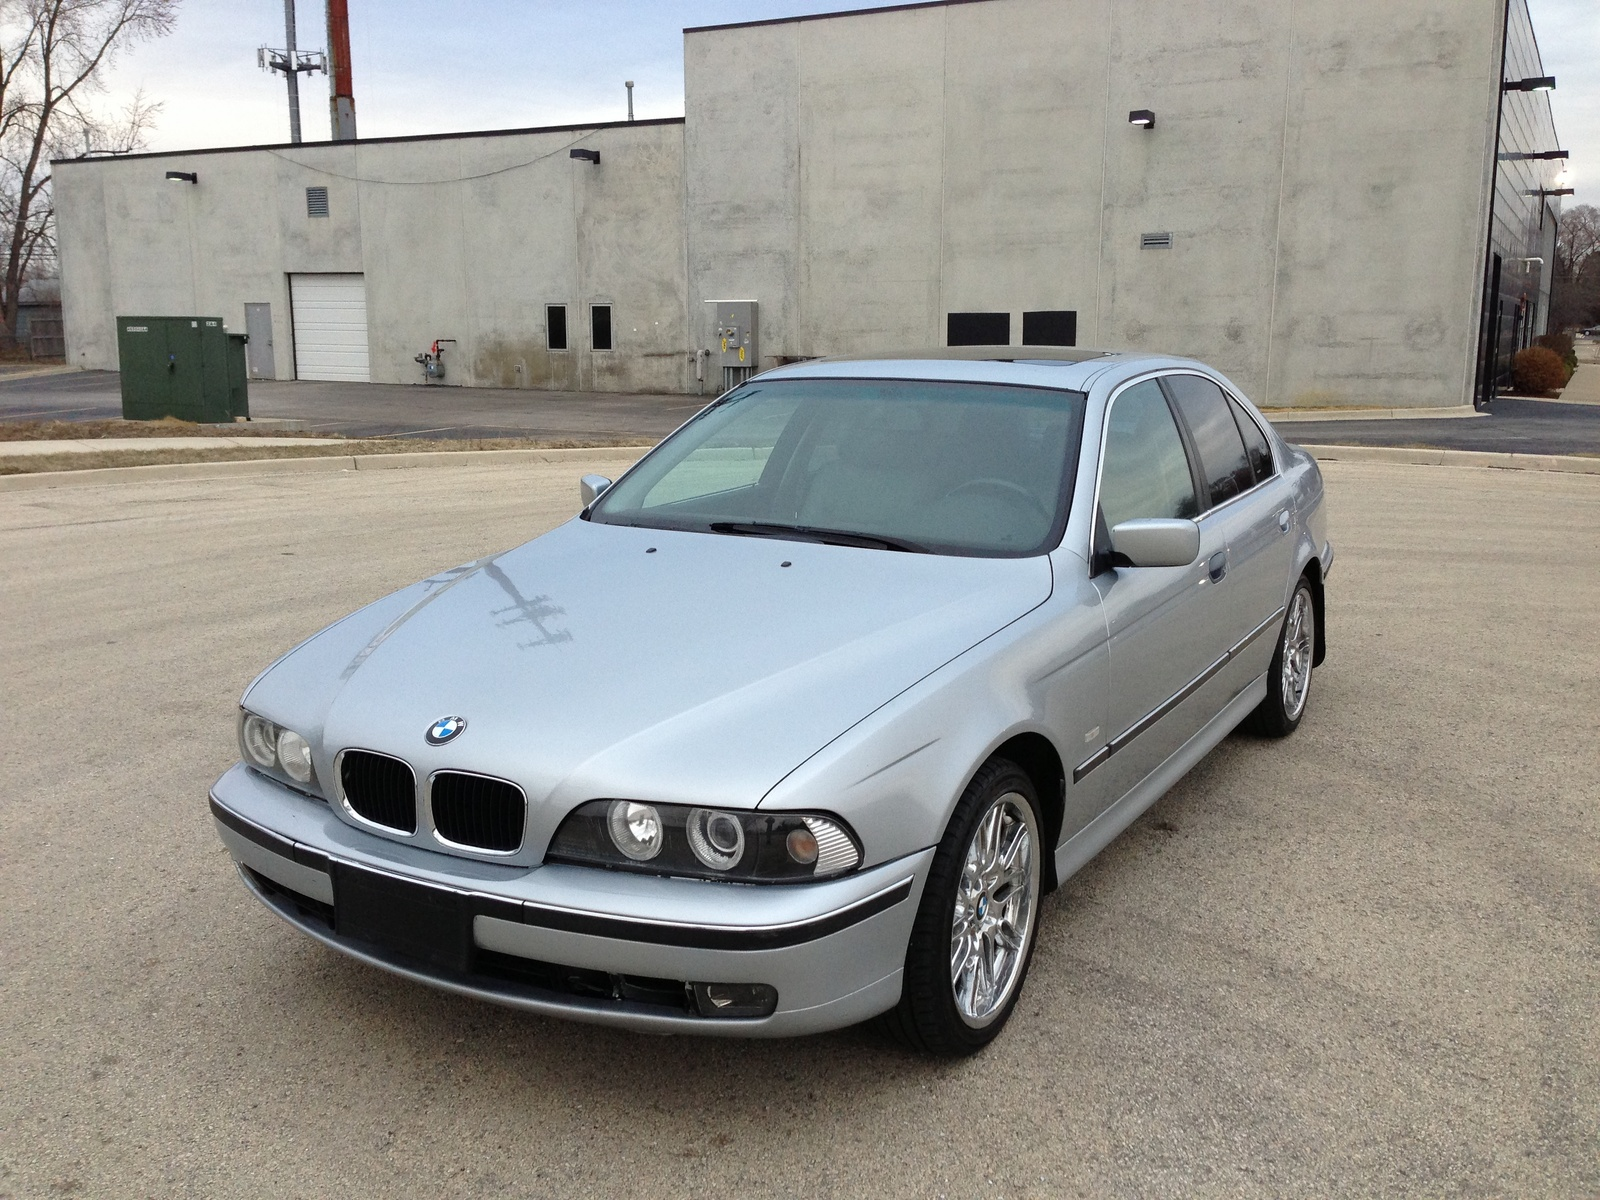 M Colored Stripe also Technik together with Technik further 1997 Bmw 5 Series Pictures C22305 pi36671164 in addition 1999 Bmw 5 Series Pictures C22307 pi36344696. on 1999 x5